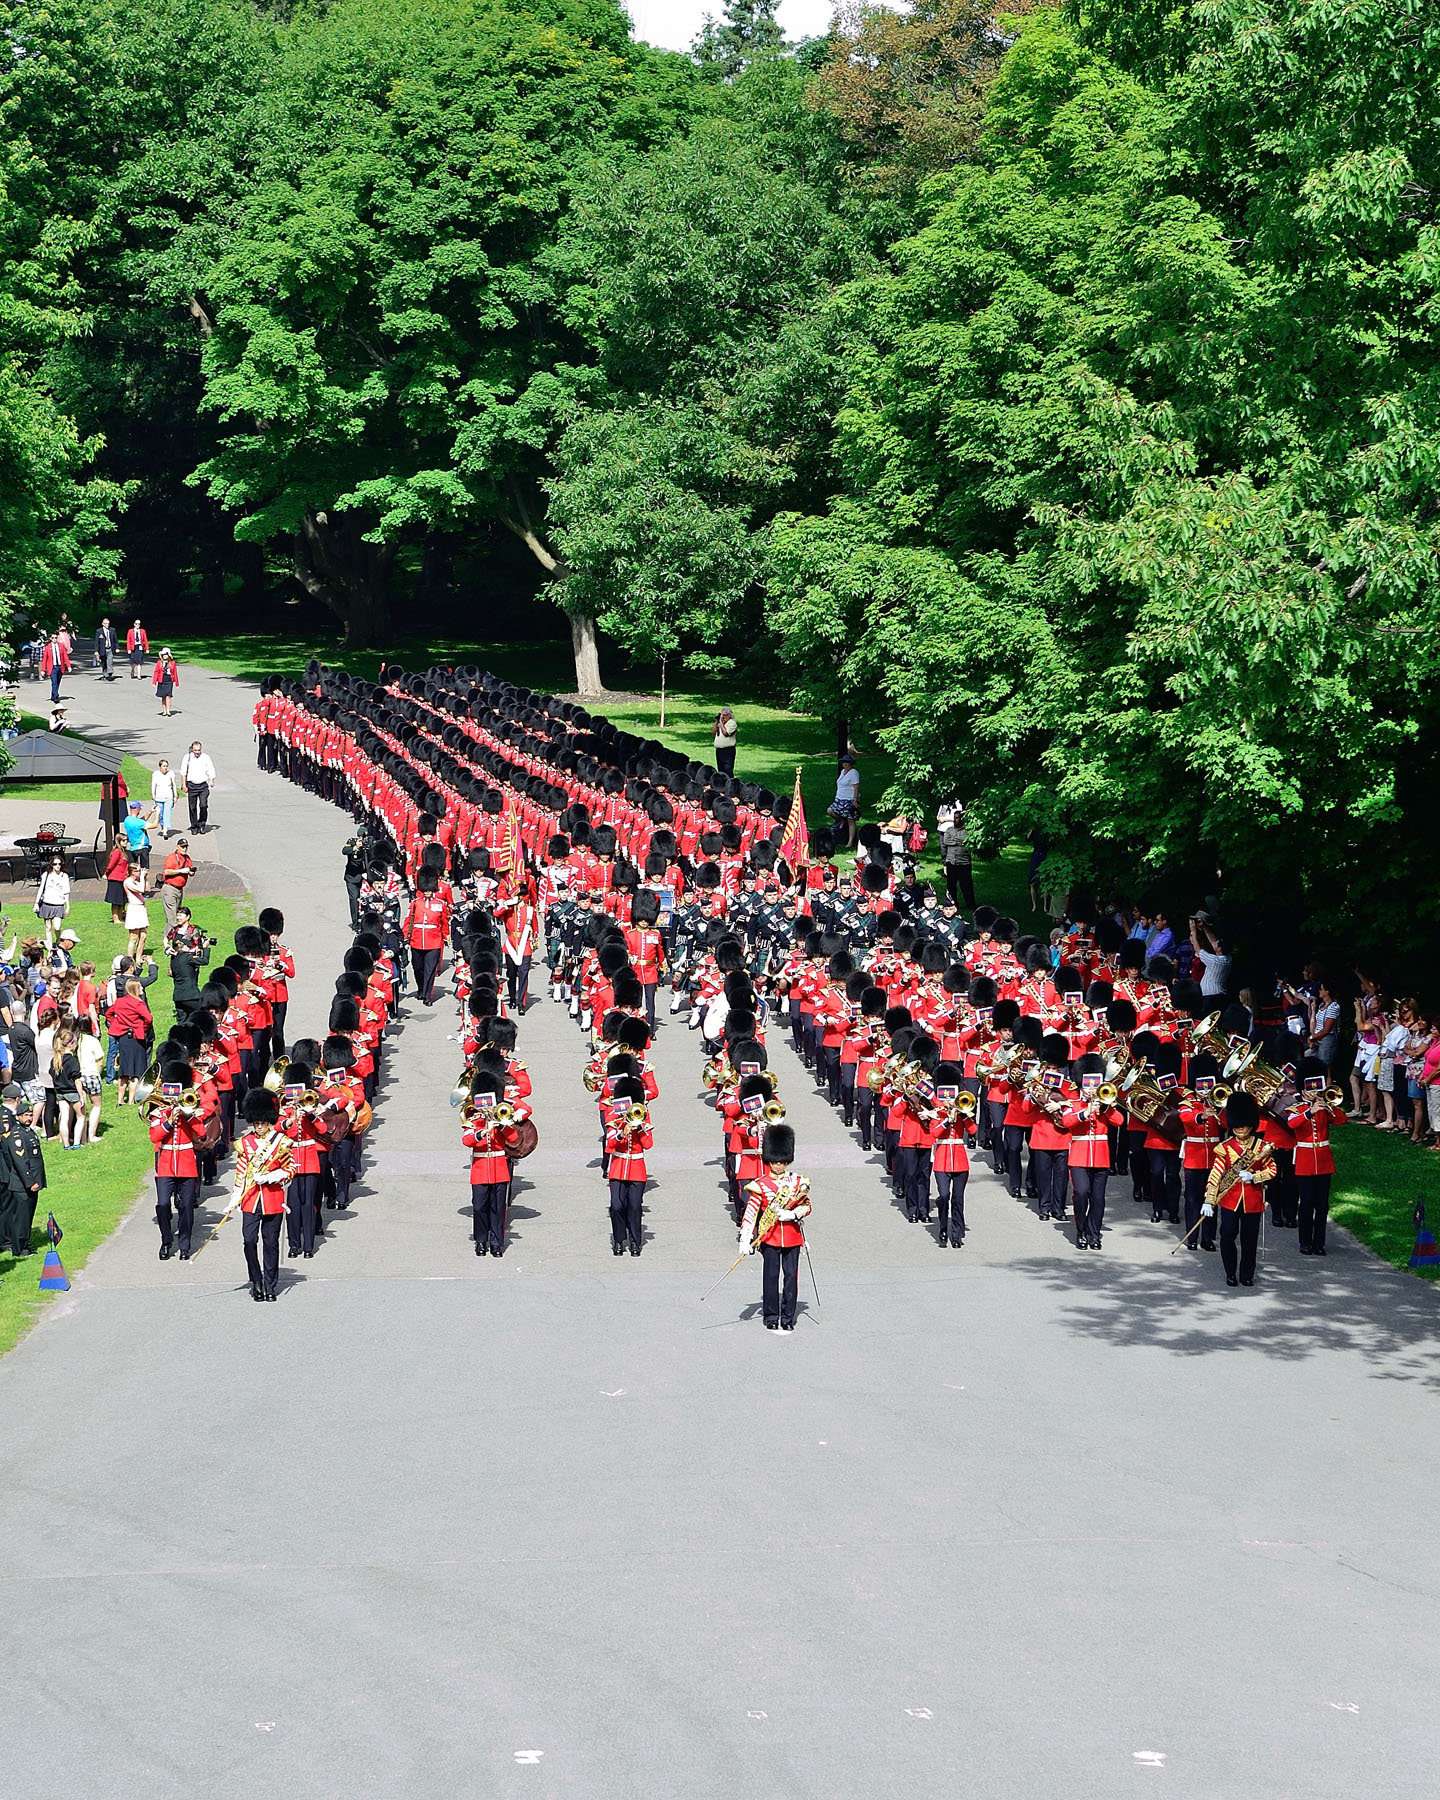 His Excellency the Right Honourable David Johnston, Governor General and Commander-in-Chief of Canada, invited the public to join him for the annual Inspection of the Ceremonial Guard  on the grounds of Rideau Hall.